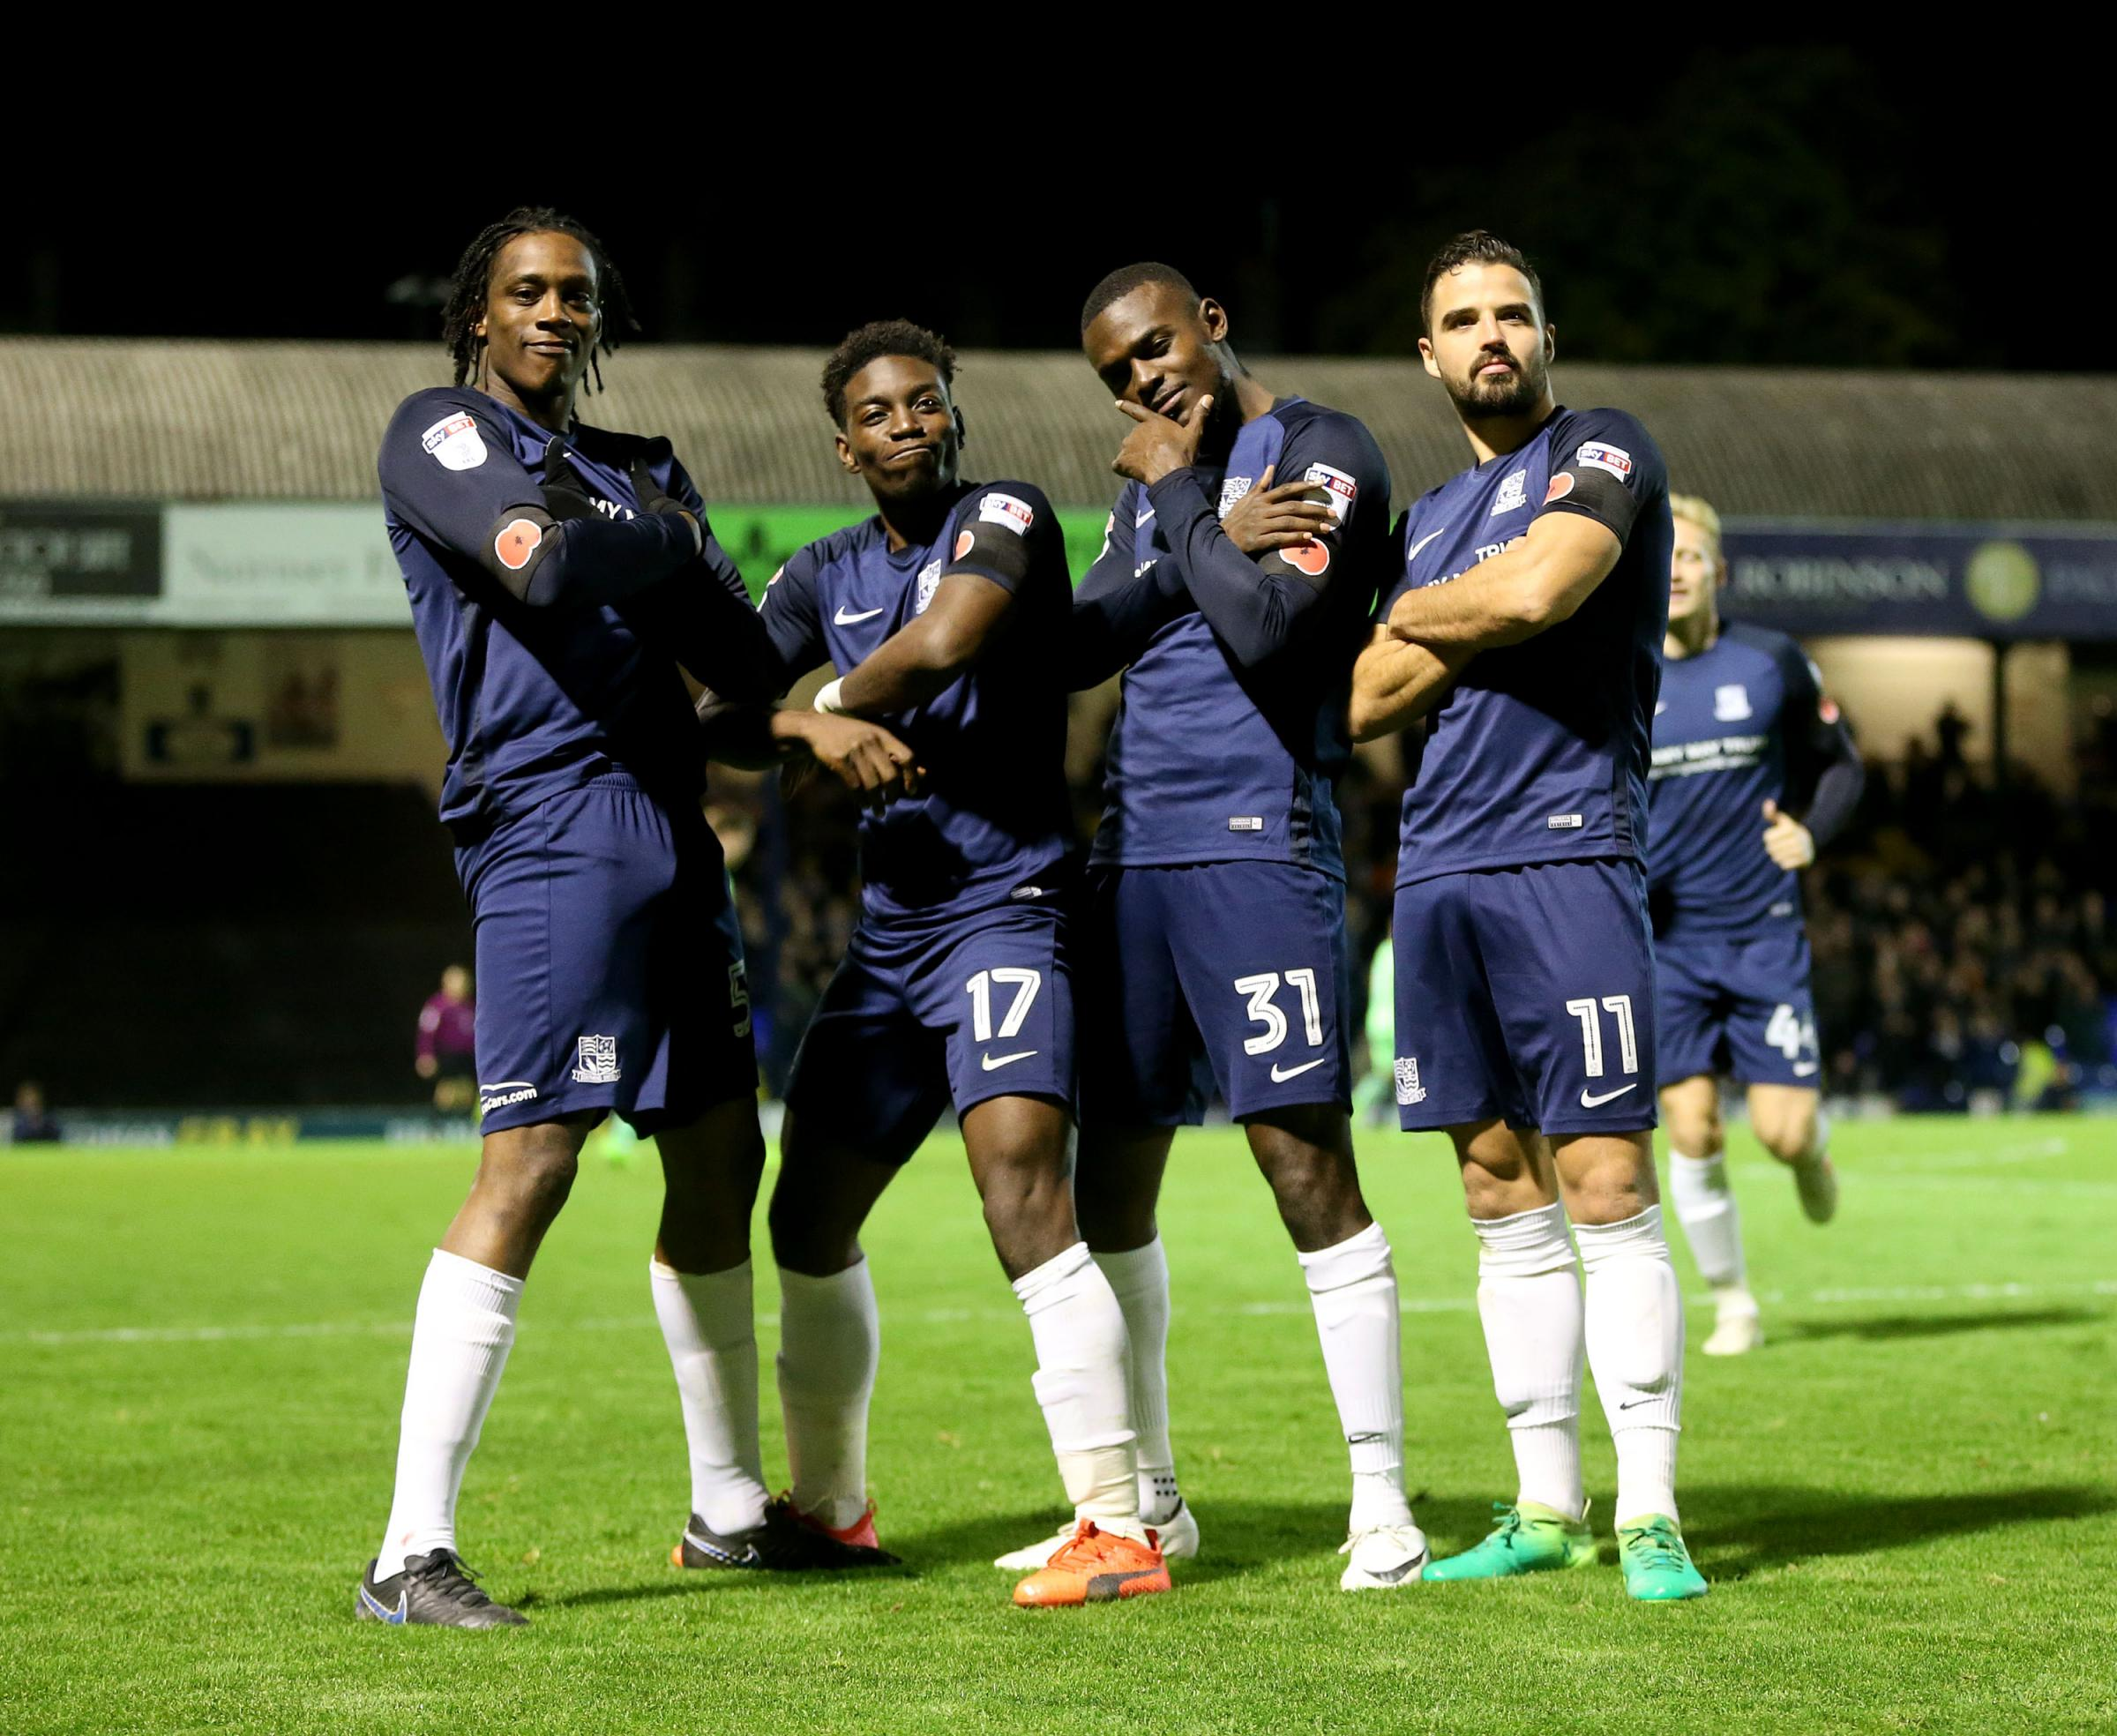 Celebration time - Theo Robinson celebrates his goal with his team-mates